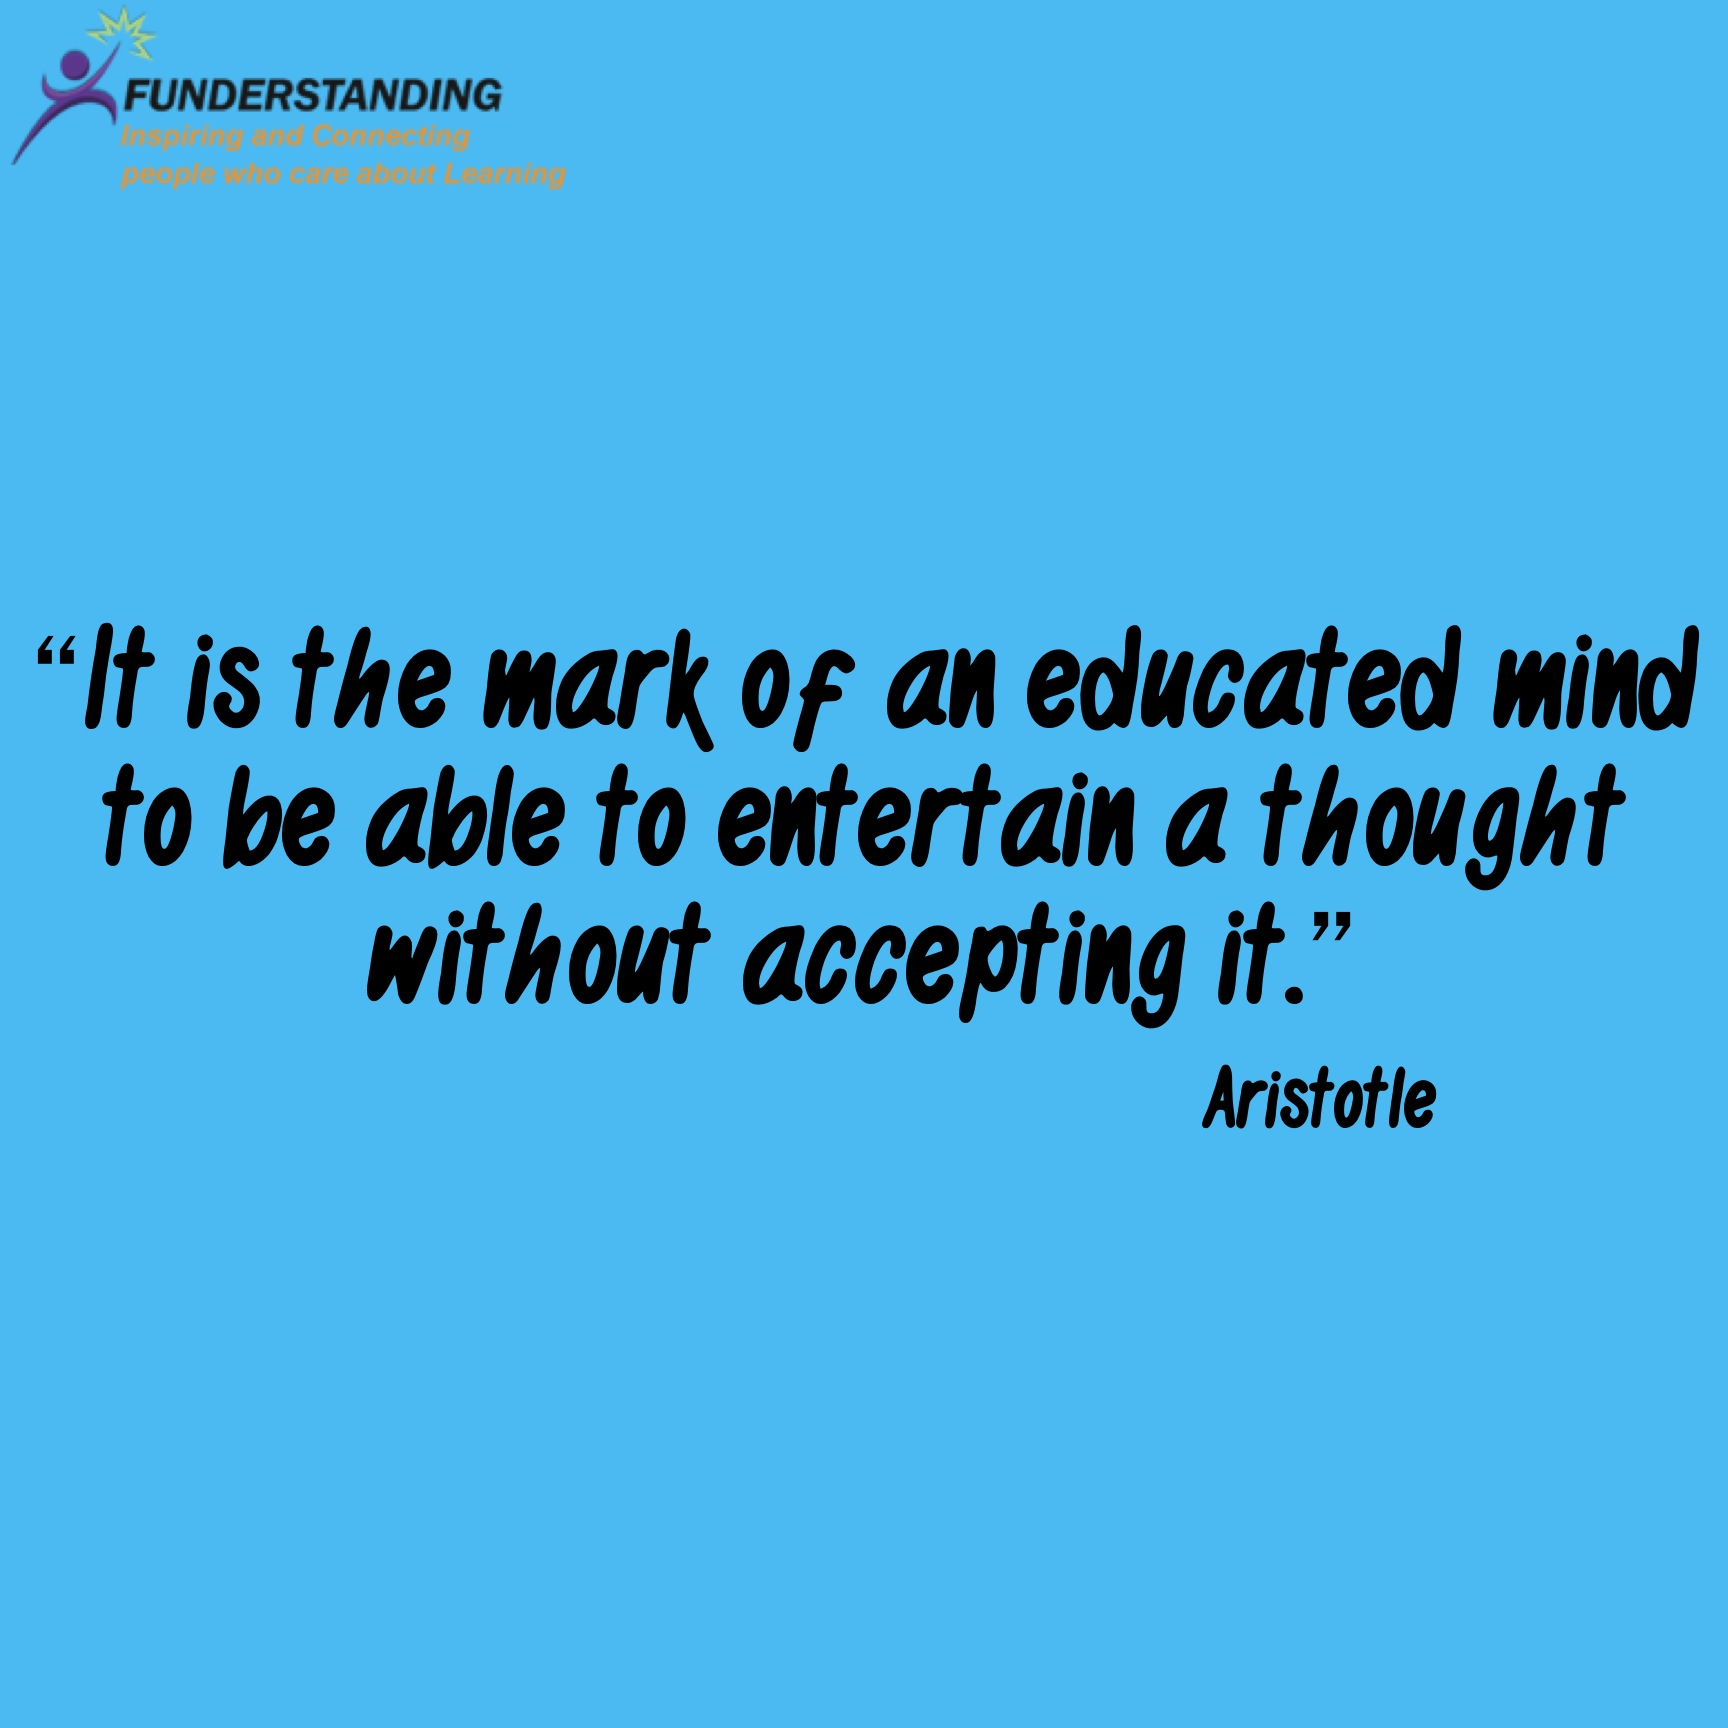 Thought For The Day Quotes Quoteoftheday42Funderstanding  Funderstanding Education